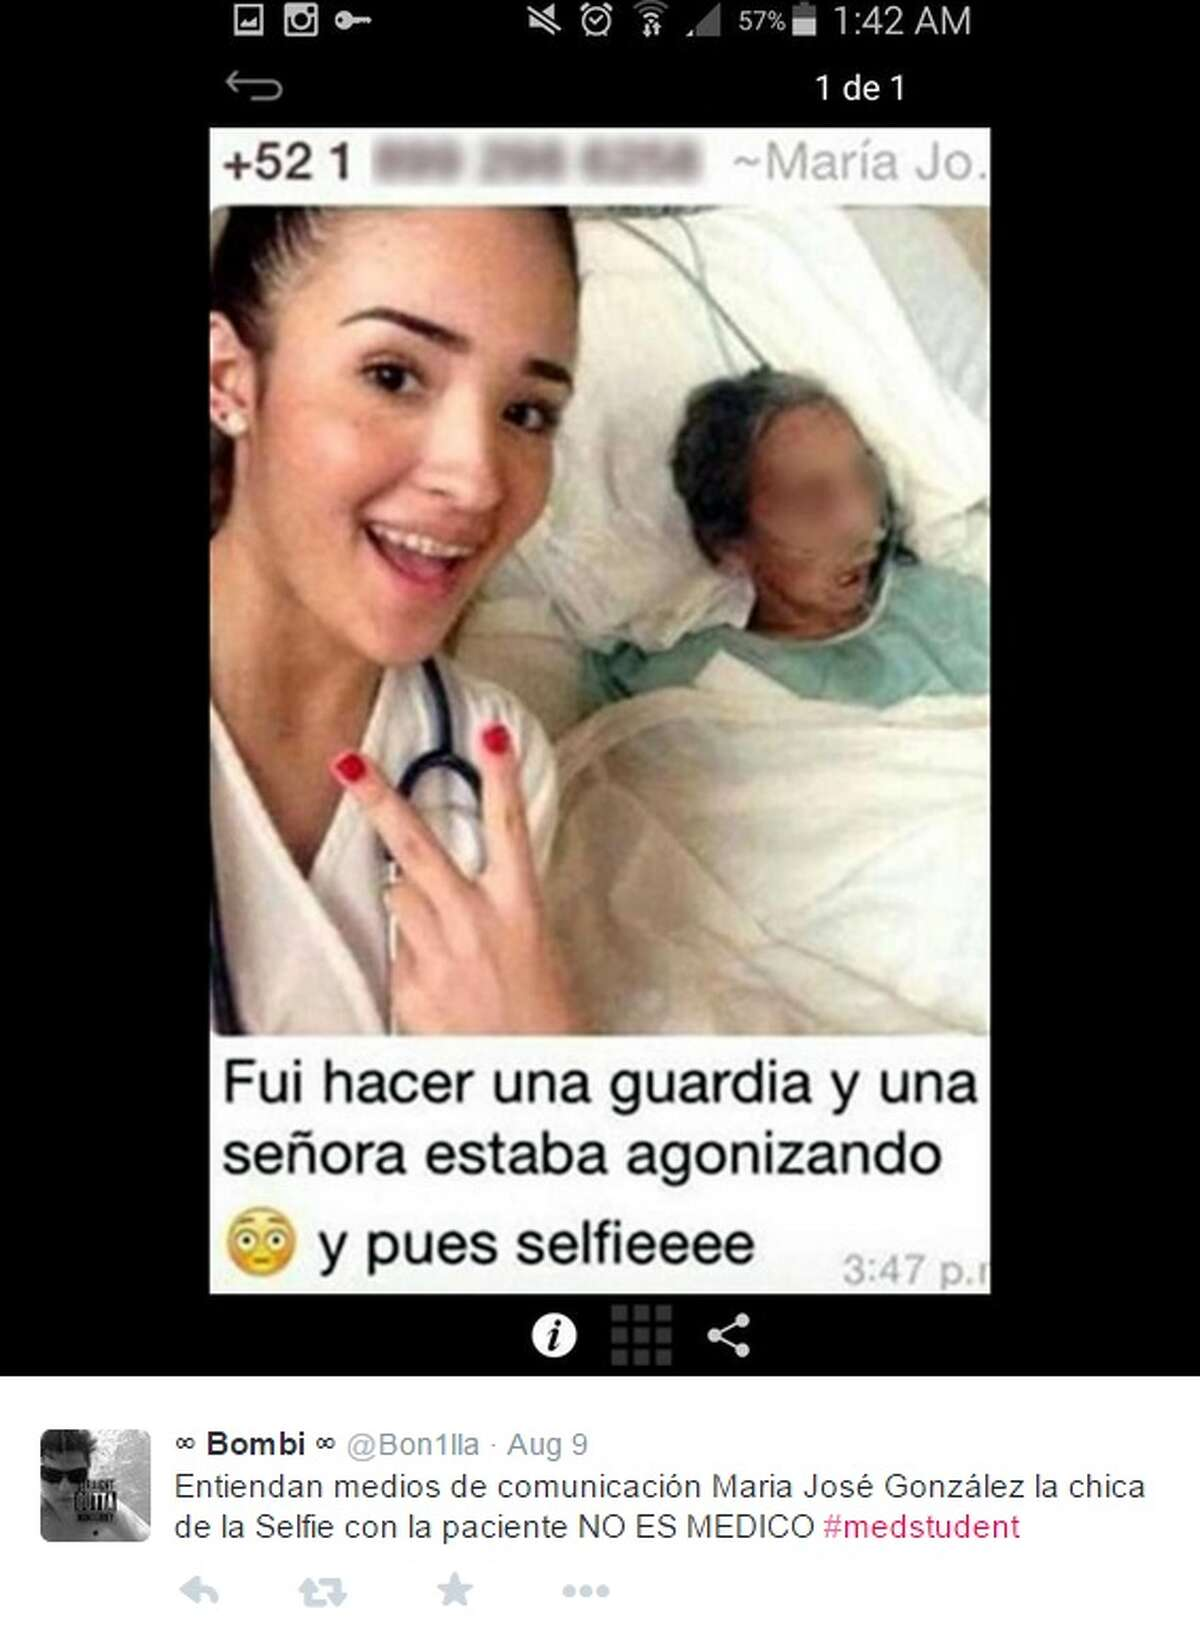 María José González, a medical student at the Universidad del Valle de Mexico in the border city of Reynosa, is gaining criticism for taking a selfie with a dying patient. She said on Facebook that she snapped the photo as a souvenir for her first day at an internship.